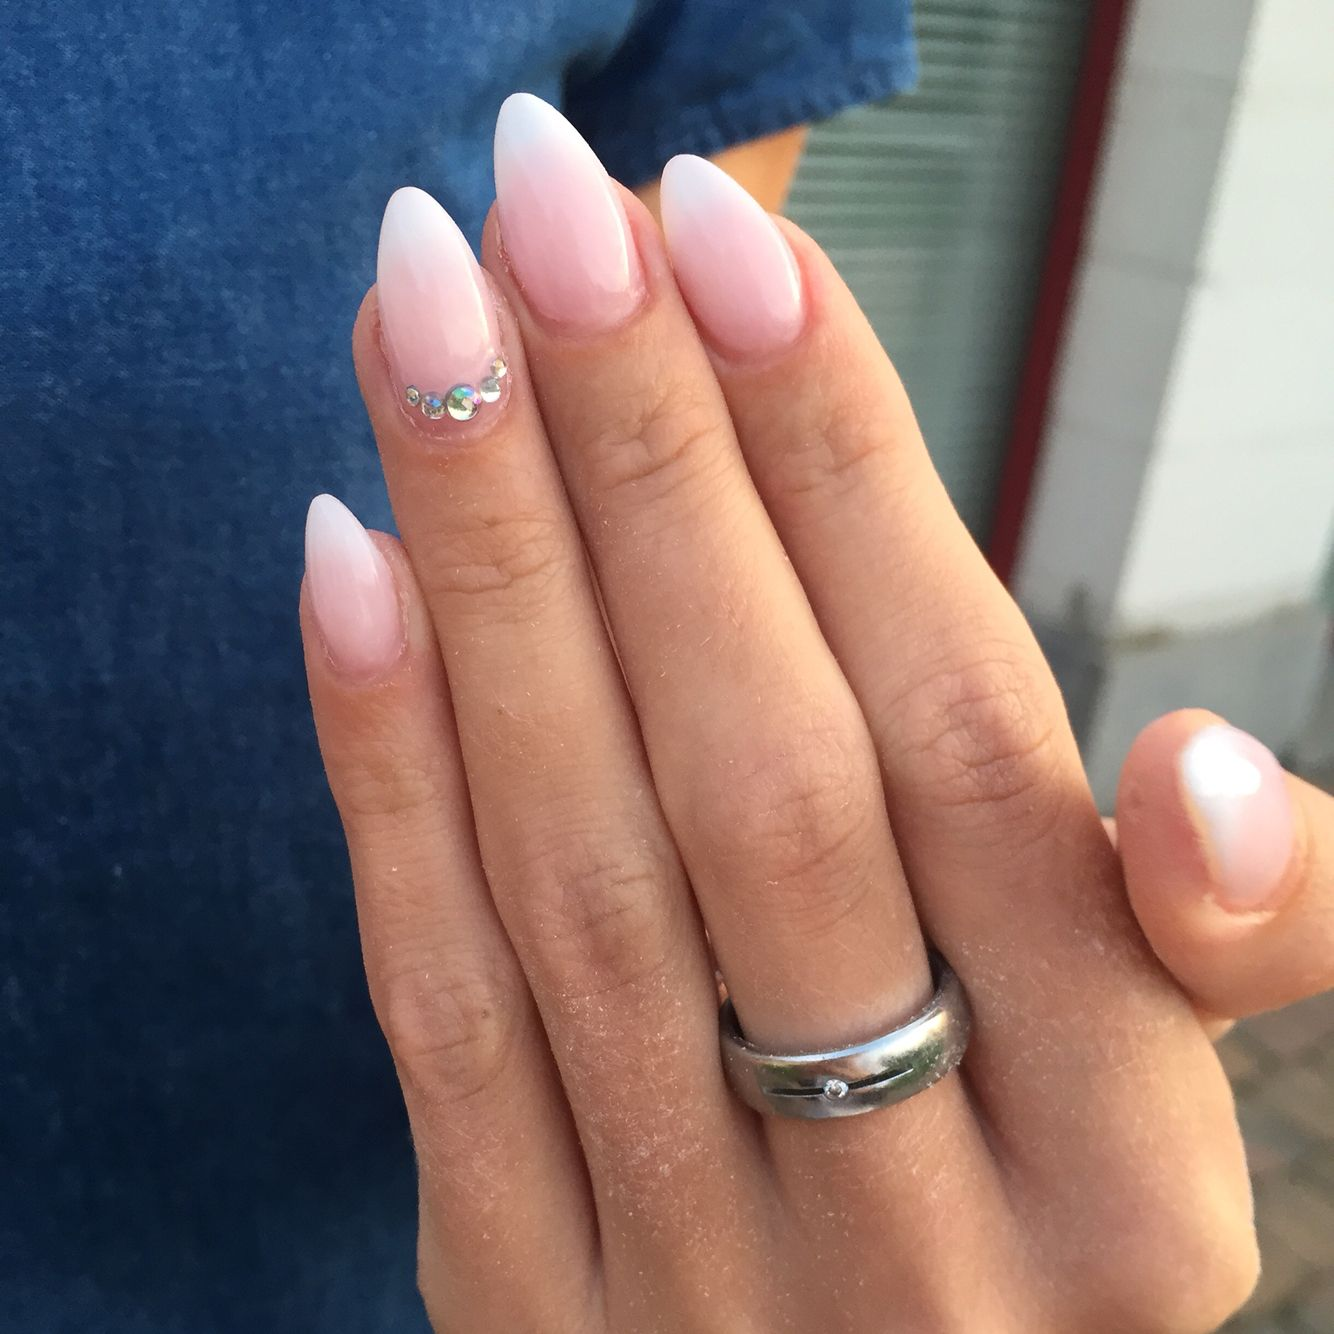 french #ombre #babyboom #nails #unicum #pronails - Nagel | Pinterest ...